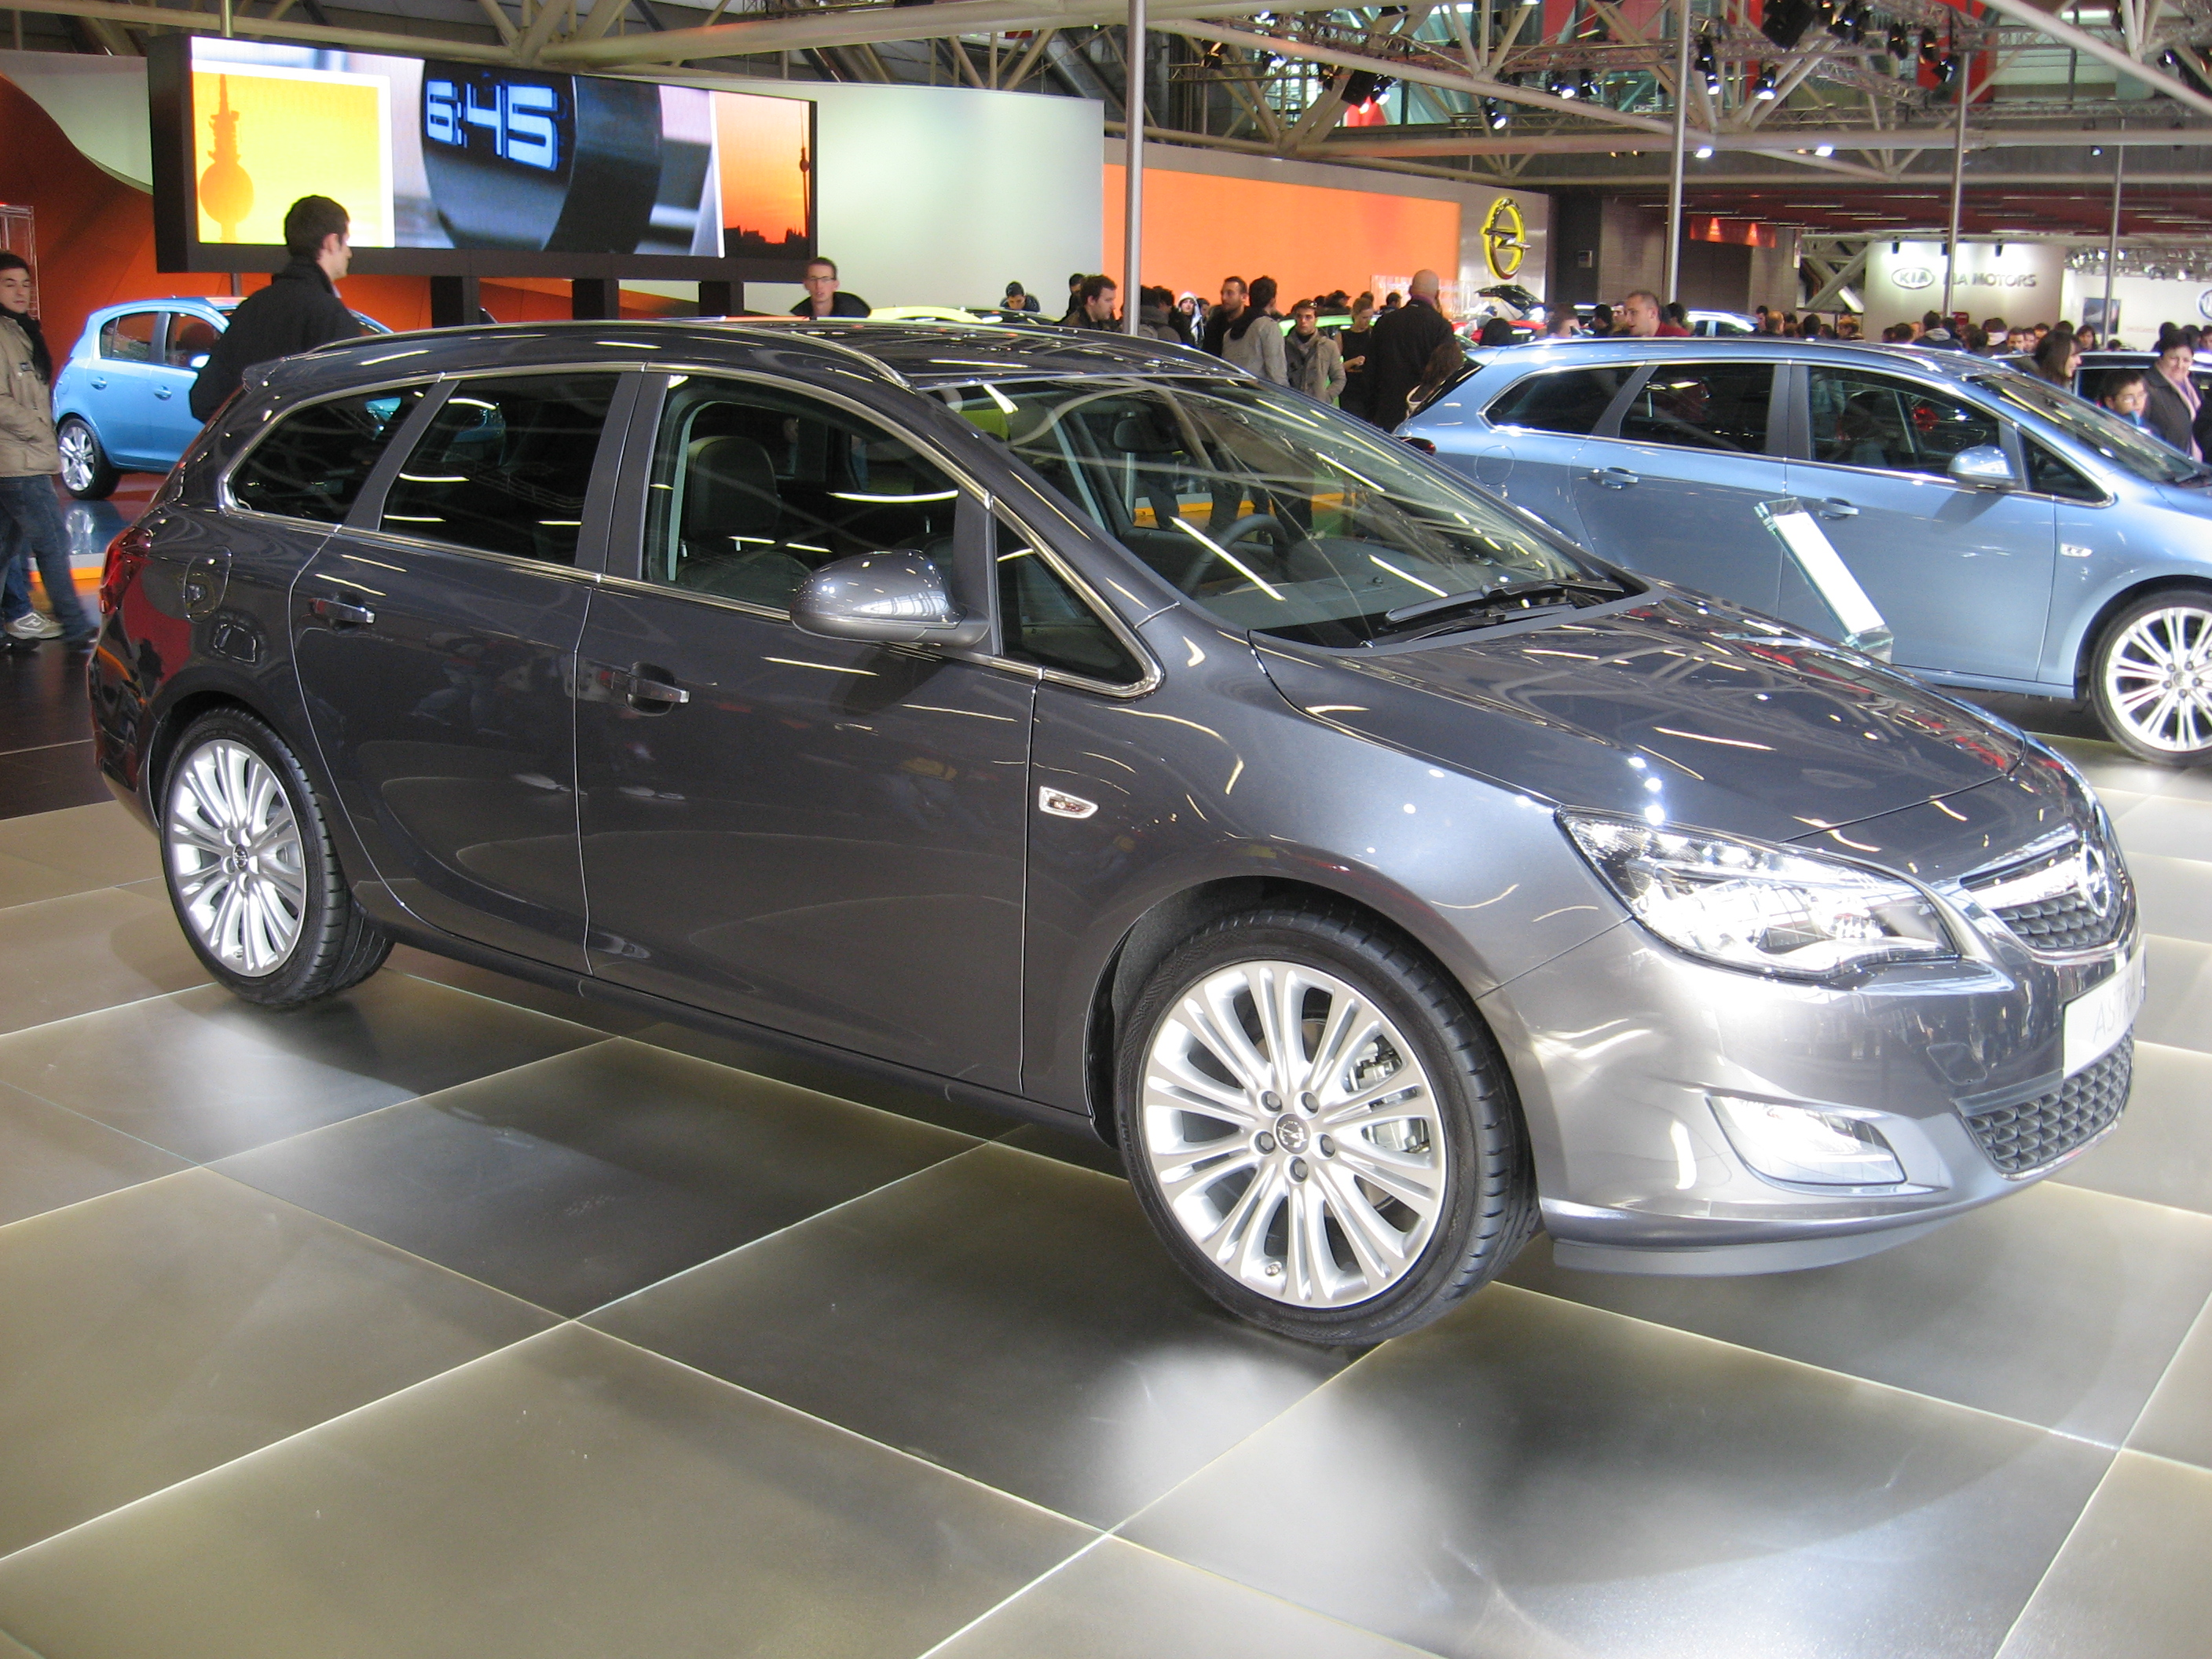 File Opel Astra J Sports Tourer Front View Jpg Wikimedia Commons